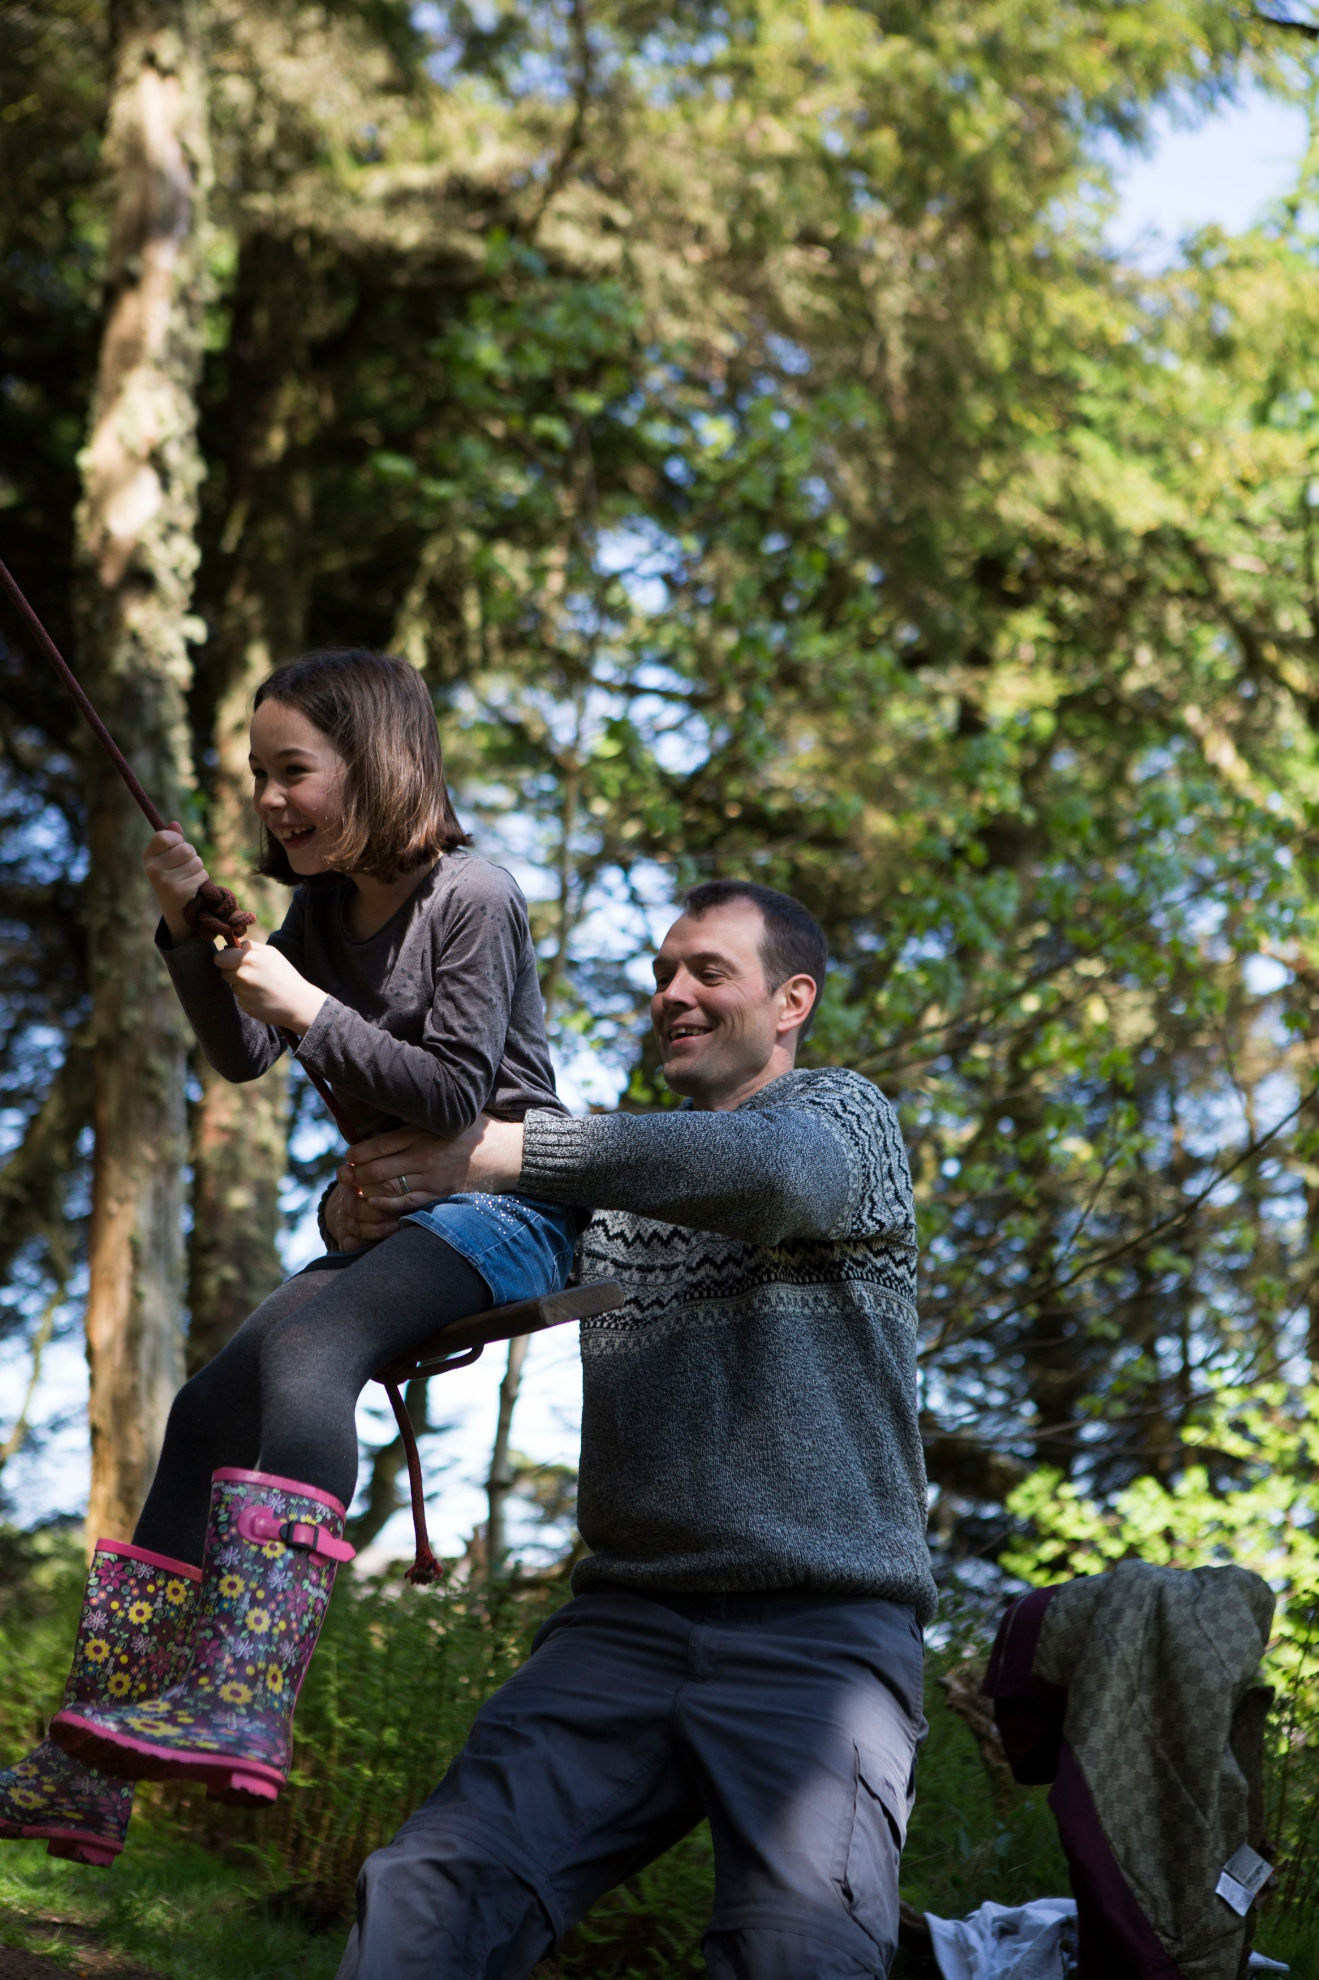 Ross and Sienna Smith on the swing at Kergord Forest | River Thompson